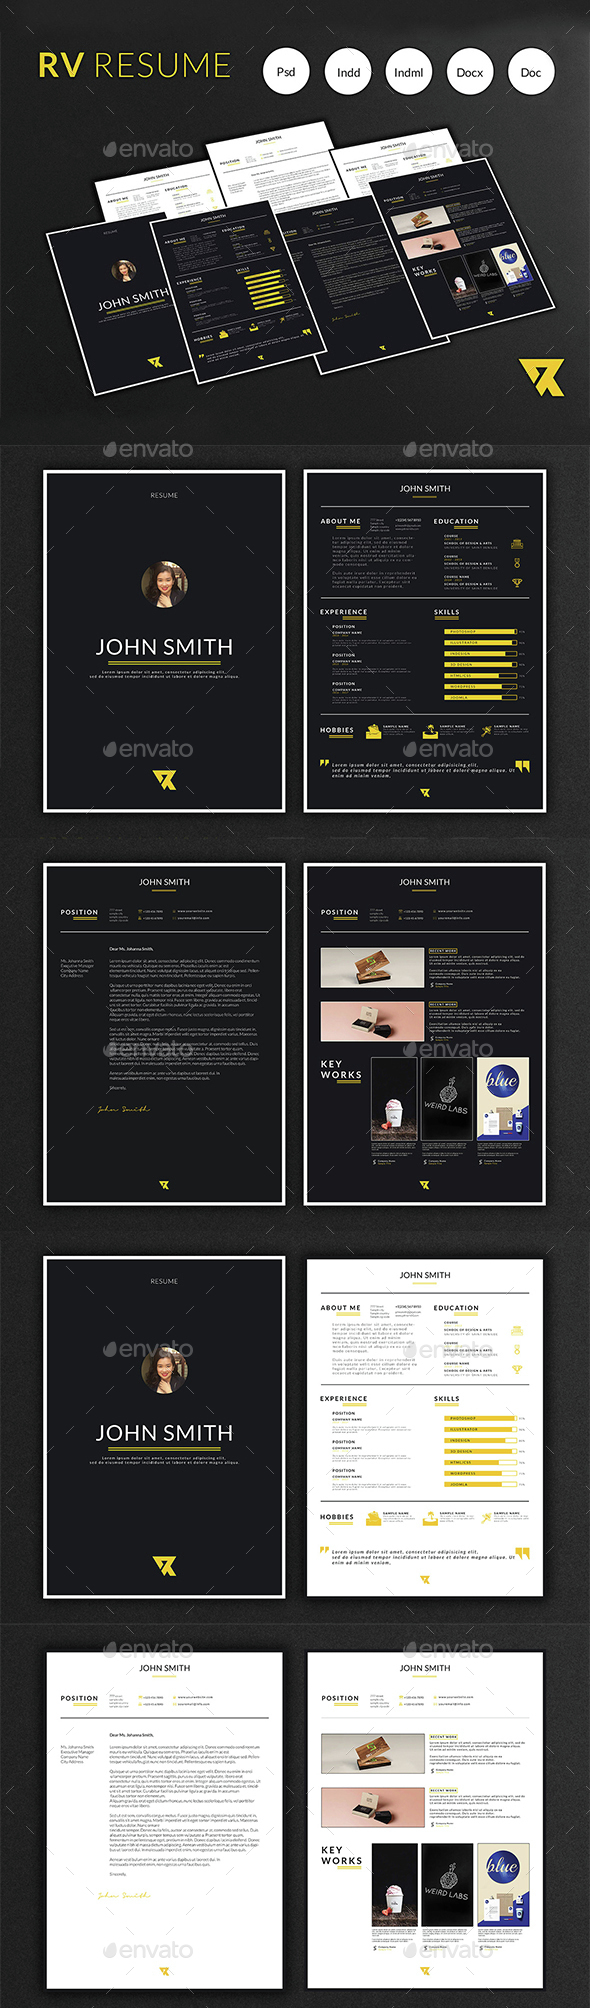 Preview/cover-Letter-Dark.png Envato Preview/cover-Letter.png Envato  Preview/cover.jpg Envato Preview/icon-Envato.jpg Envato  Preview/portfolio-Dark.jpg